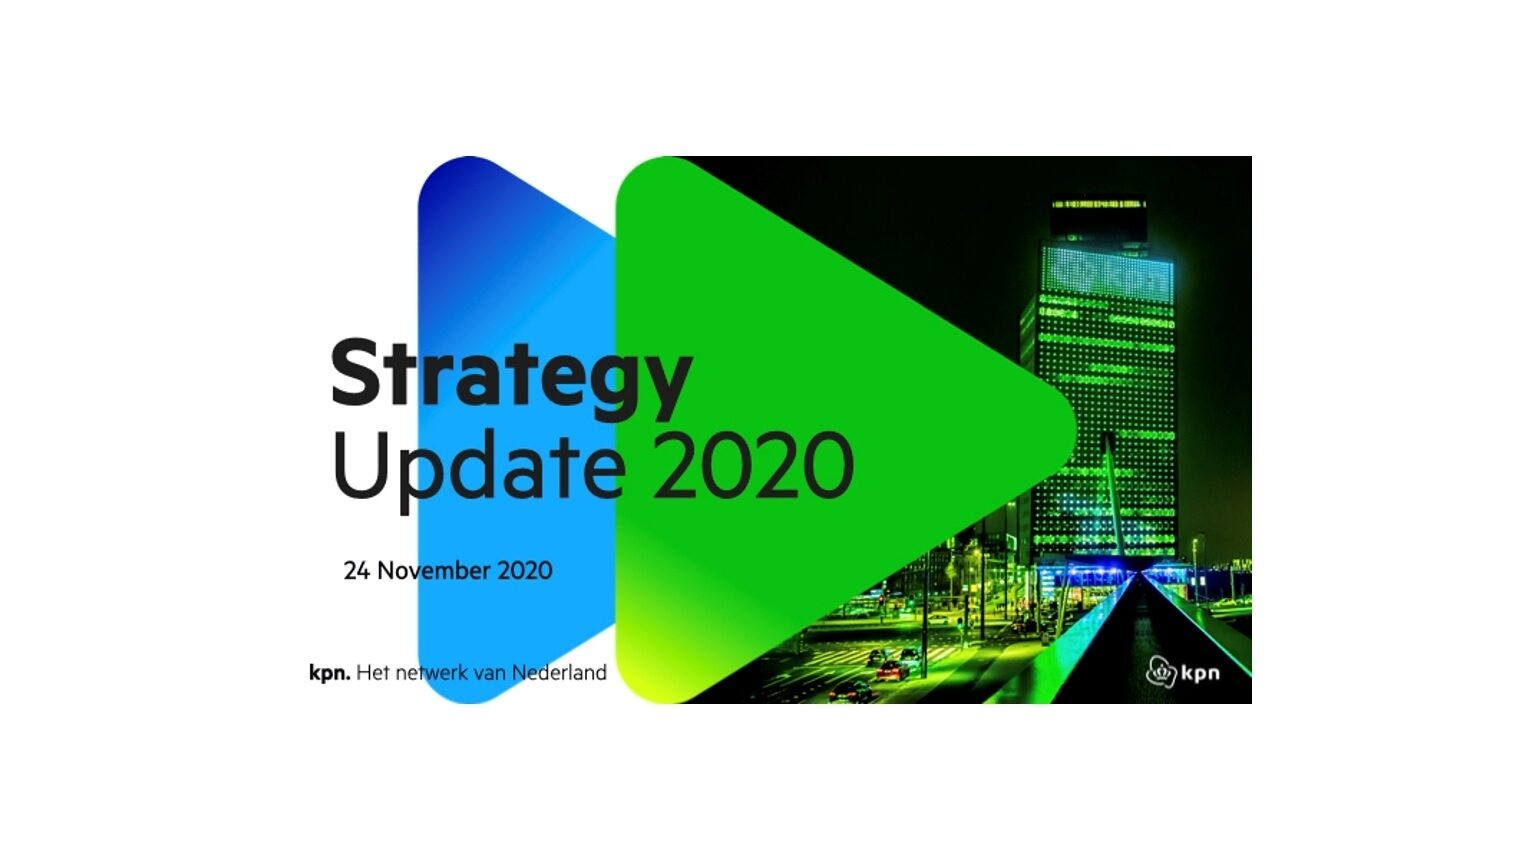 KPN Strategy Update 2020